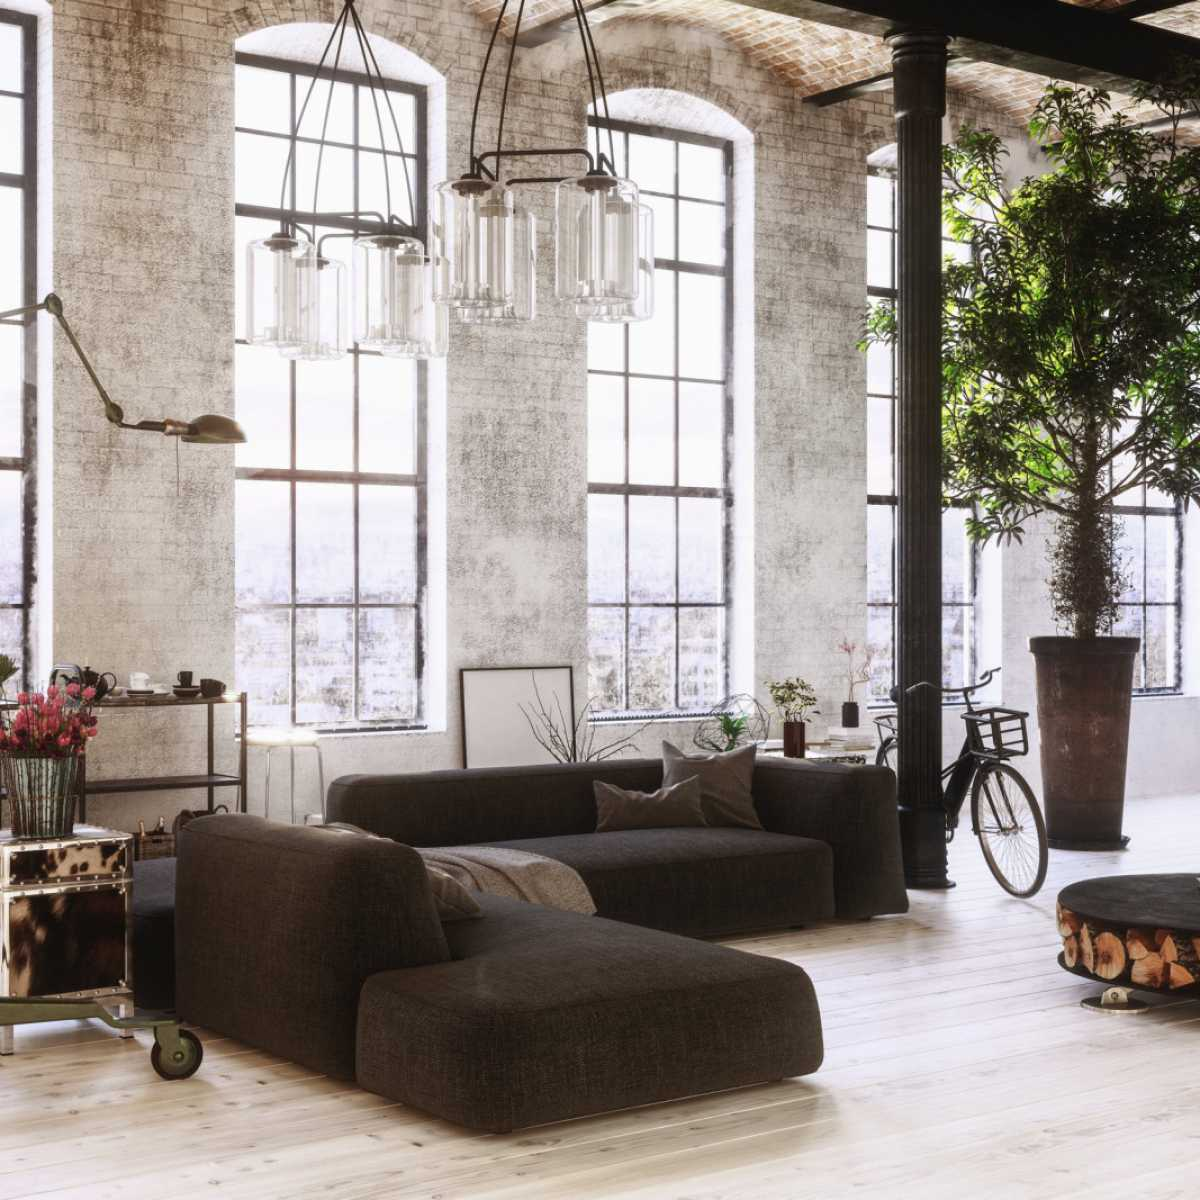 Real estate spectacular transformations: old buildings with new duties